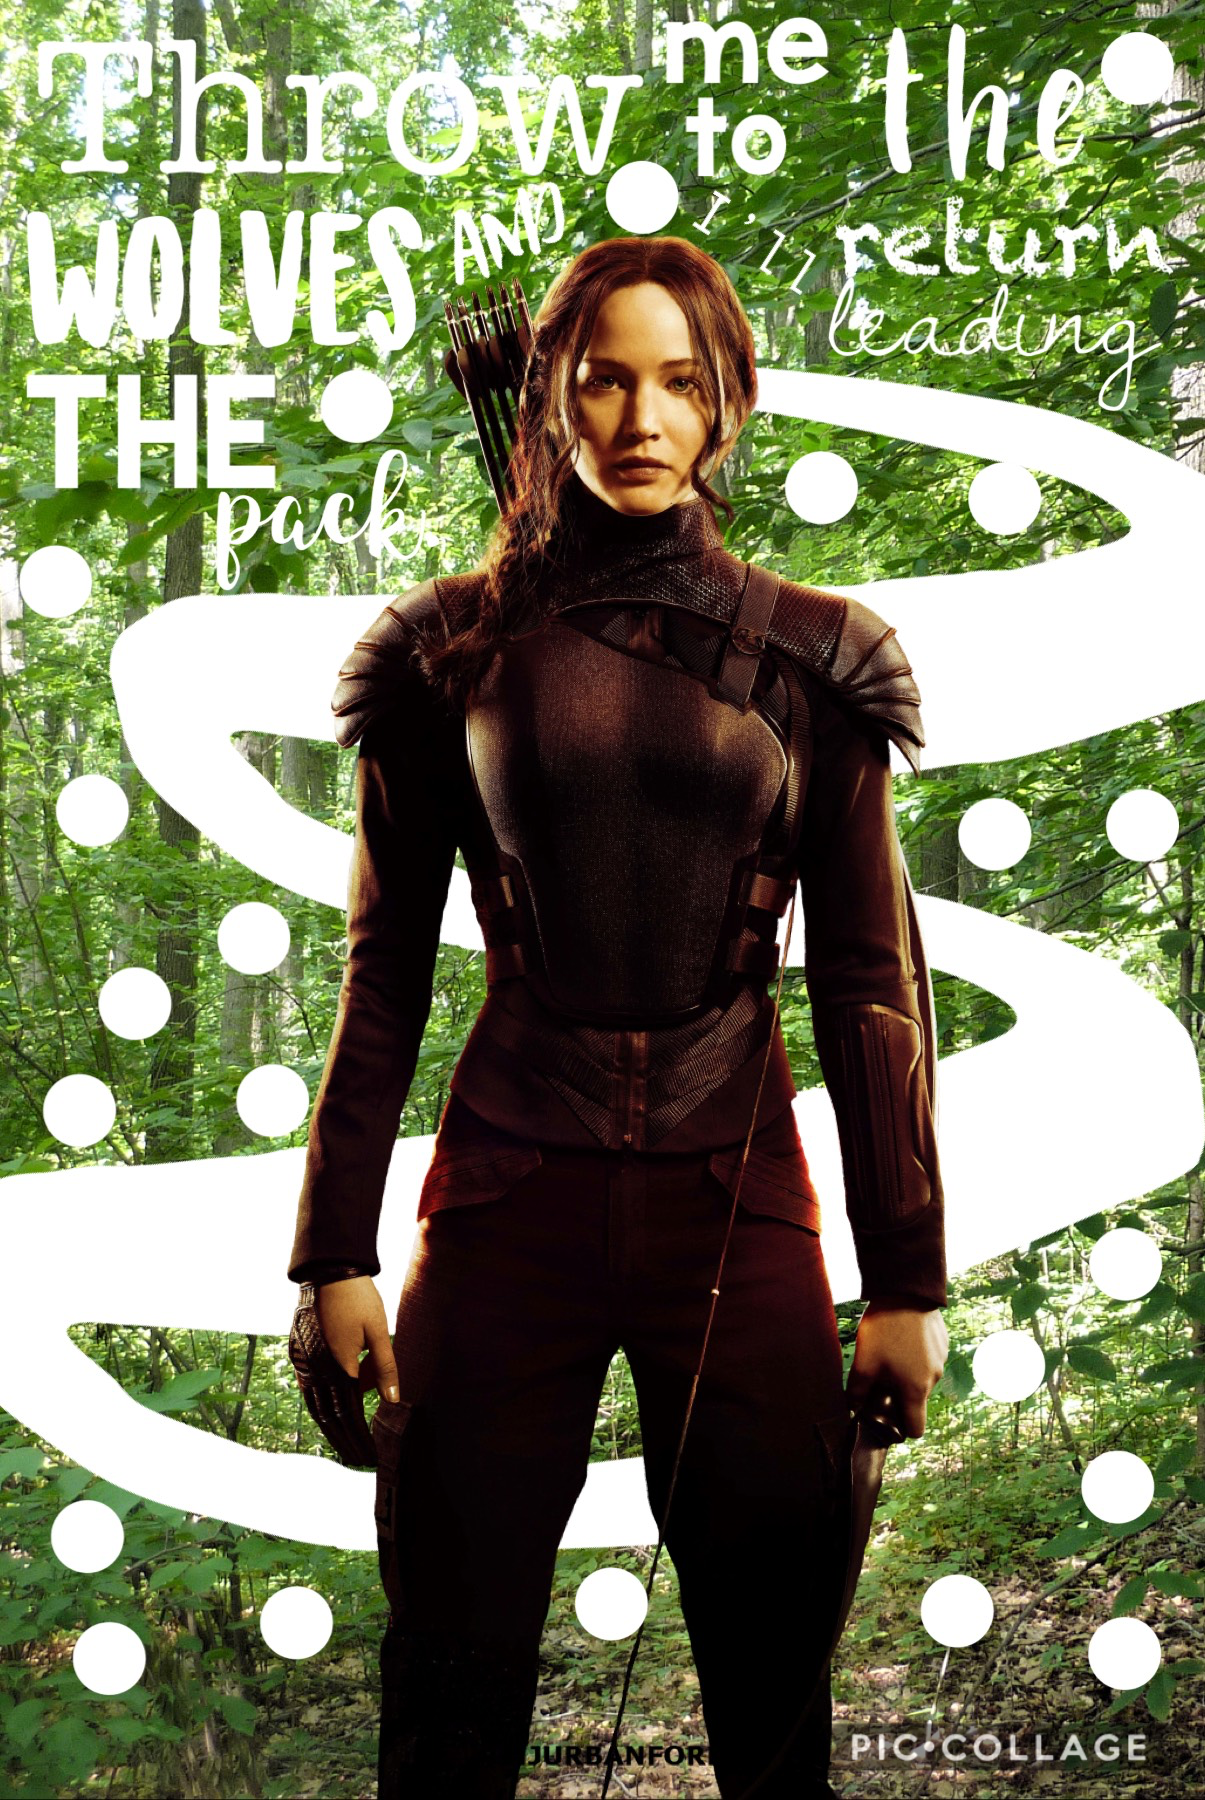 We got mockingjay part 2 from the library and I can't wait to watch it!